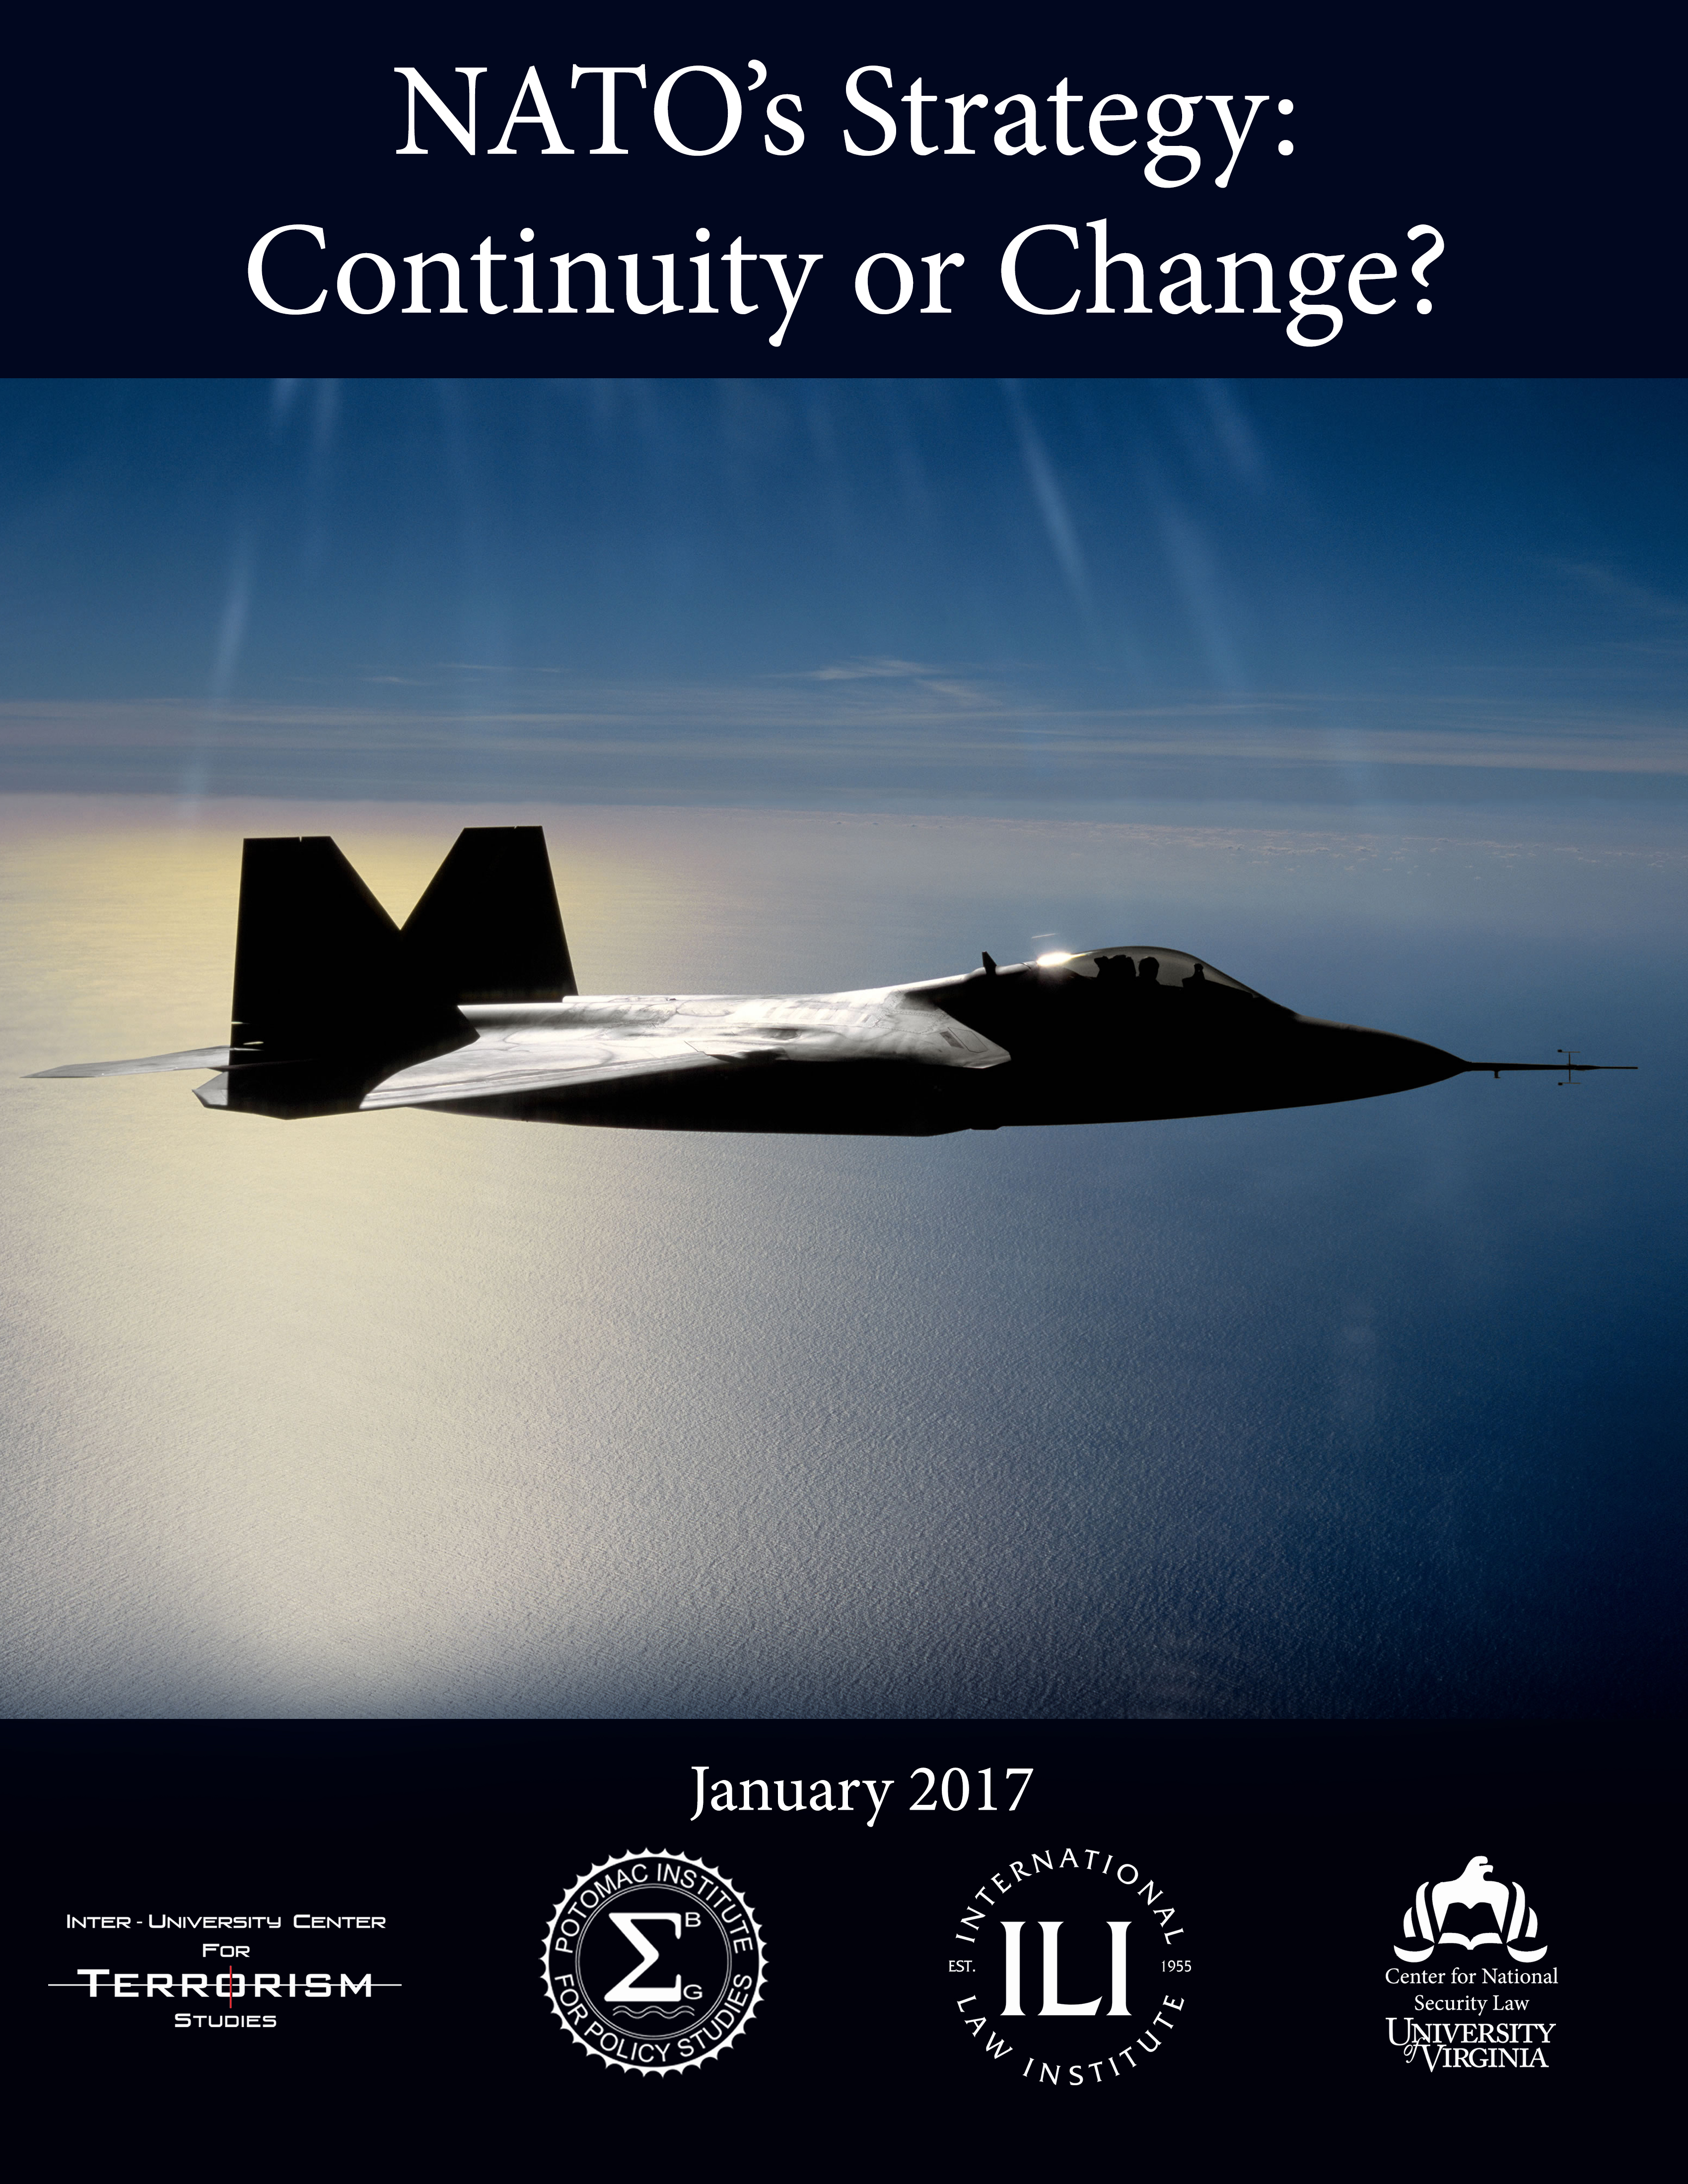 NATO's Strategy: Continuity or Change?